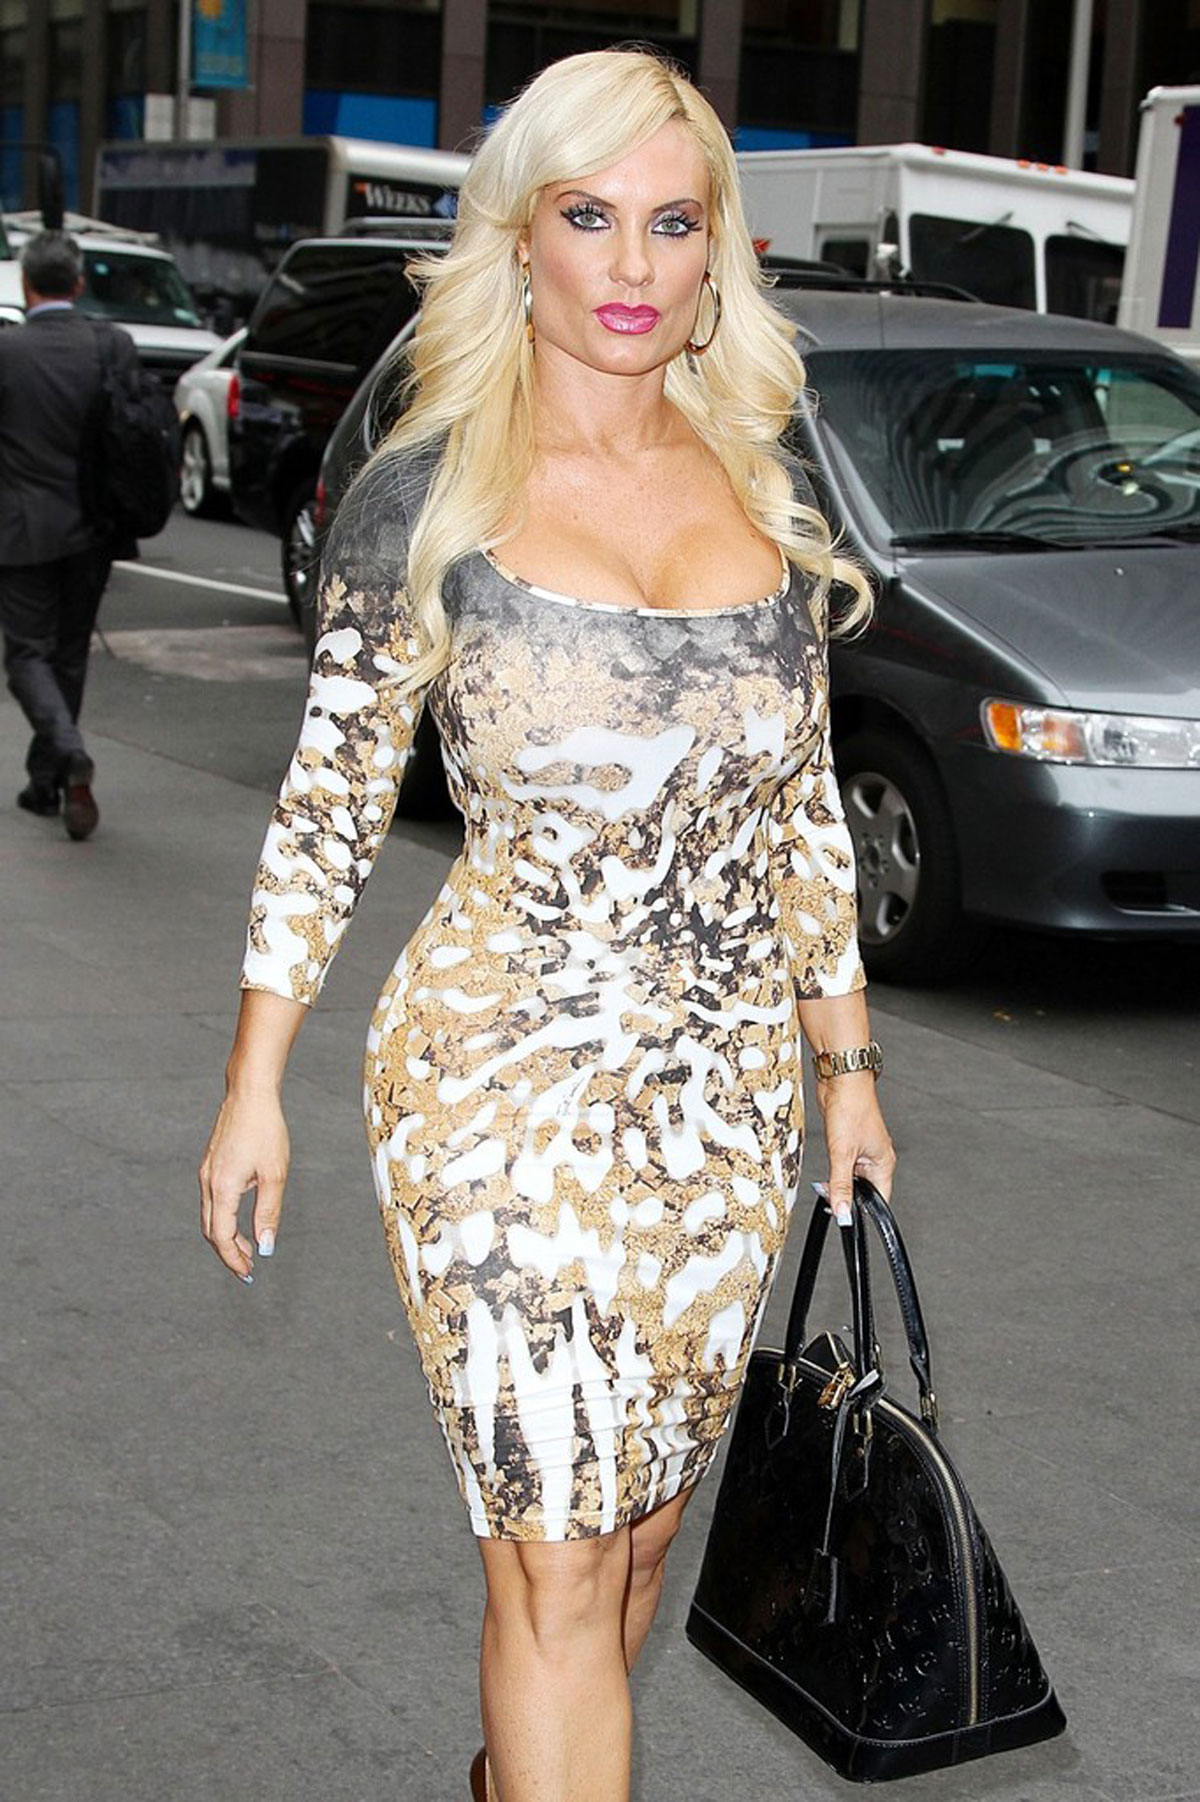 NICOLE COCO AUSTIN in Tight Dress Out and About in New York